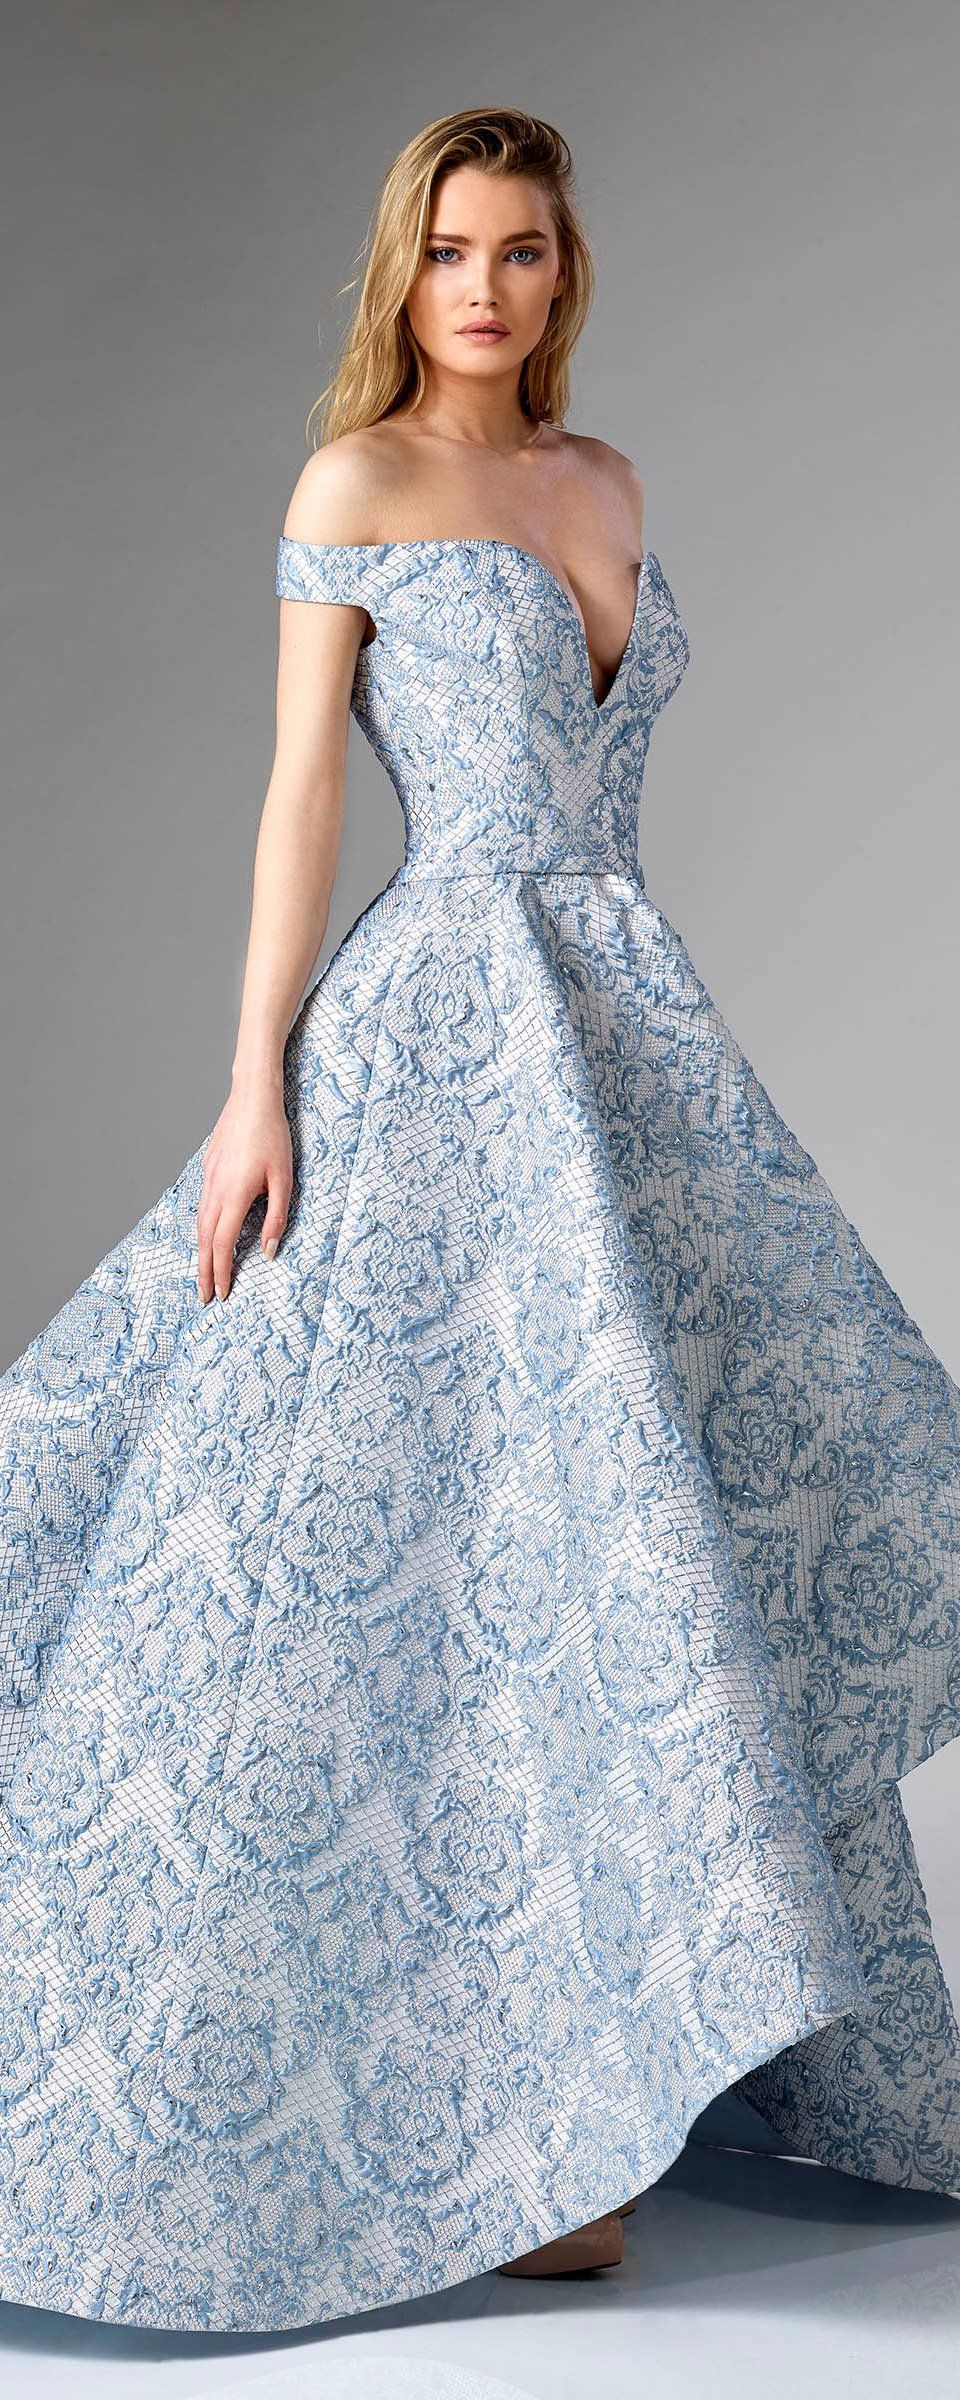 """Edward Arsouni """"Divina"""", F/W 2018-2019 - Couture 